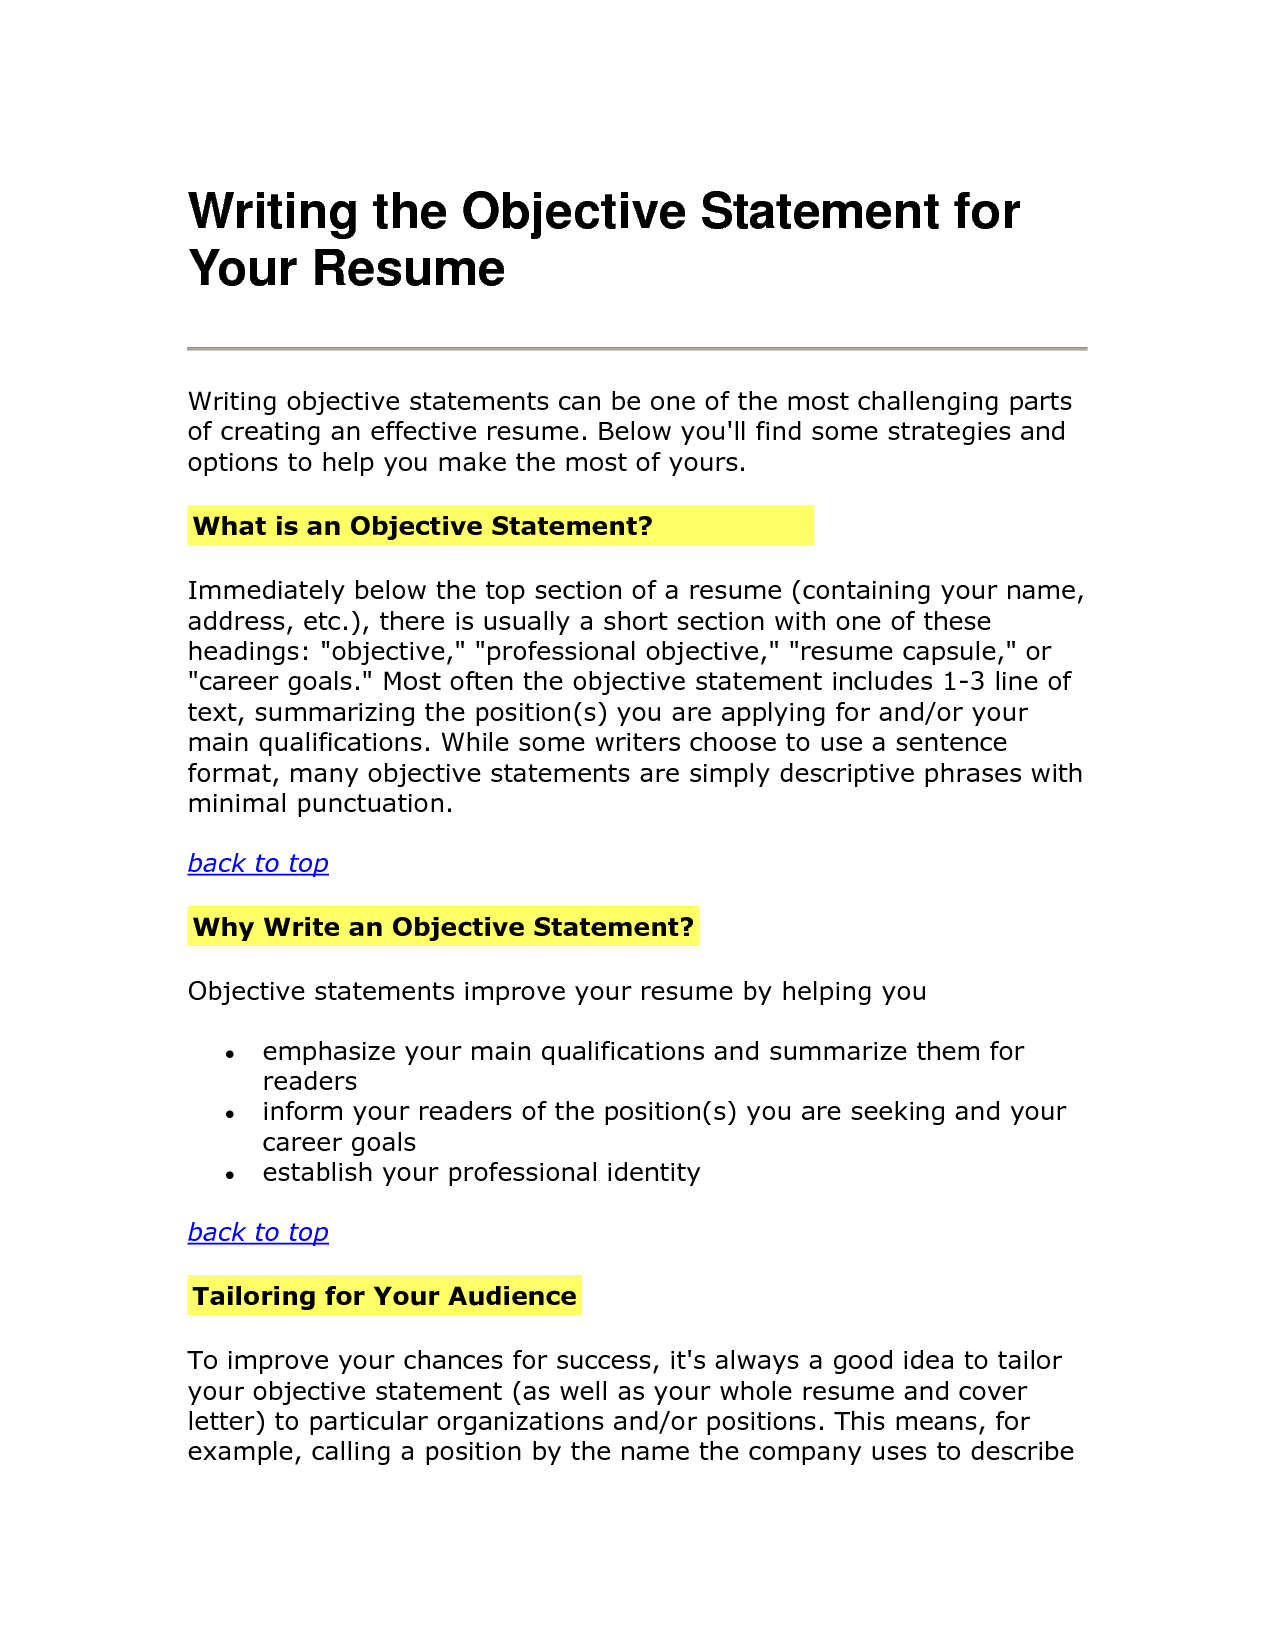 Examples of good resume objective statements